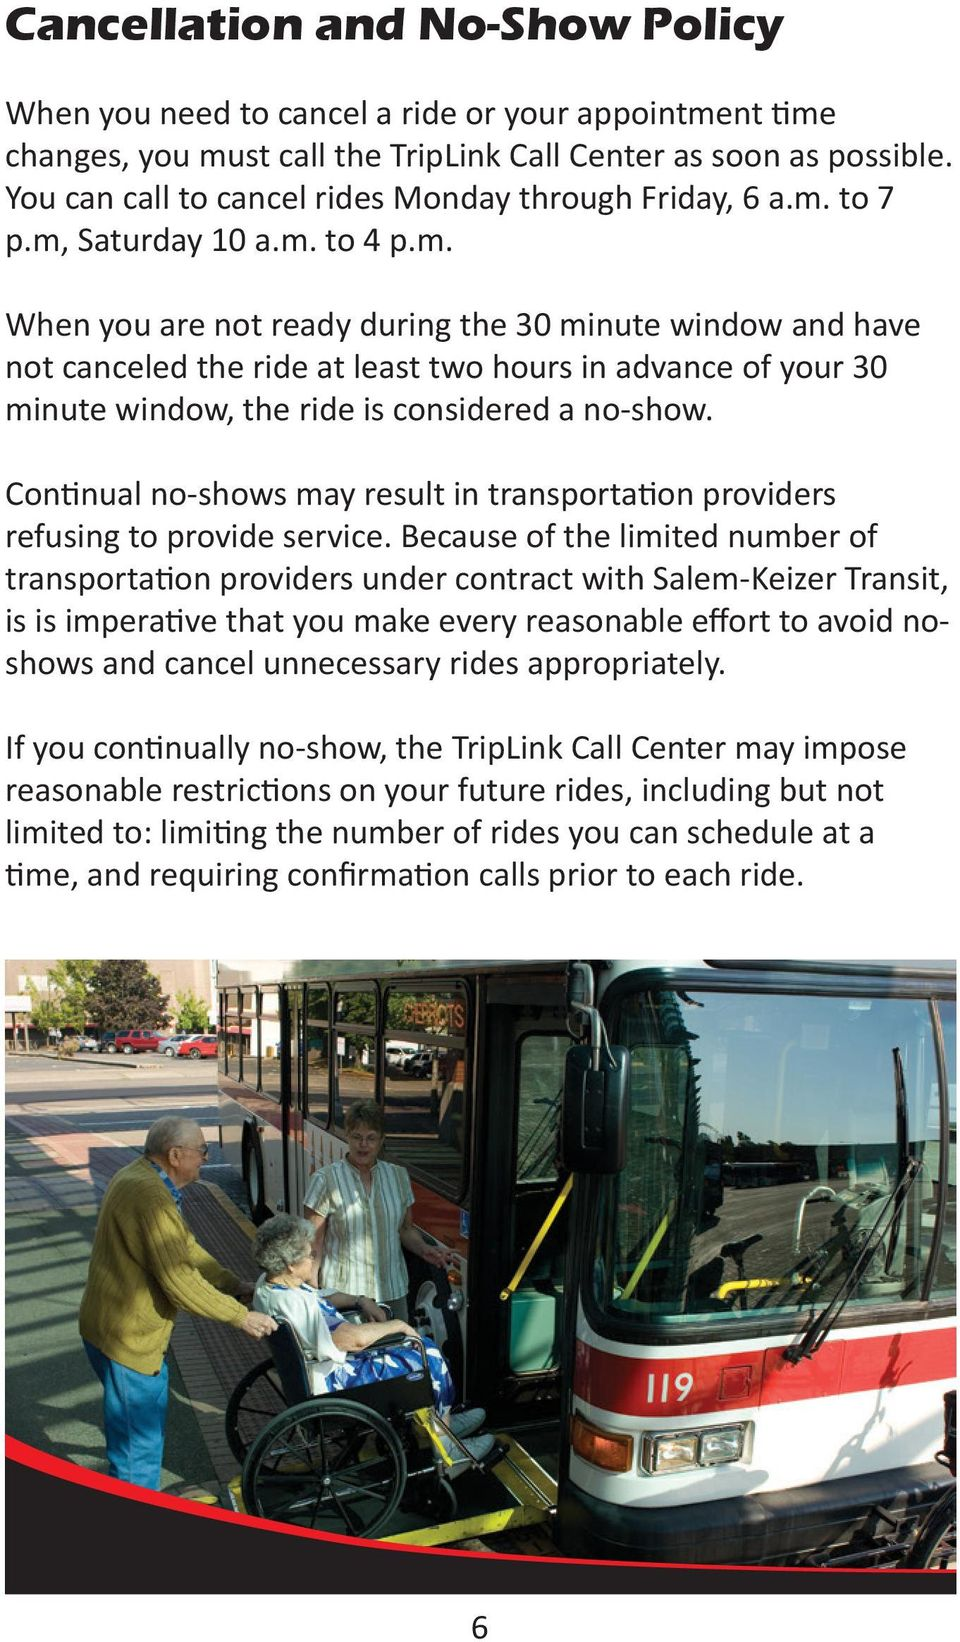 to 7 p.m, Saturday 10 a.m. to 4 p.m. When you are not ready during the 30 minute window and have not canceled the ride at least two hours in advance of your 30 minute window, the ride is considered a no-show.